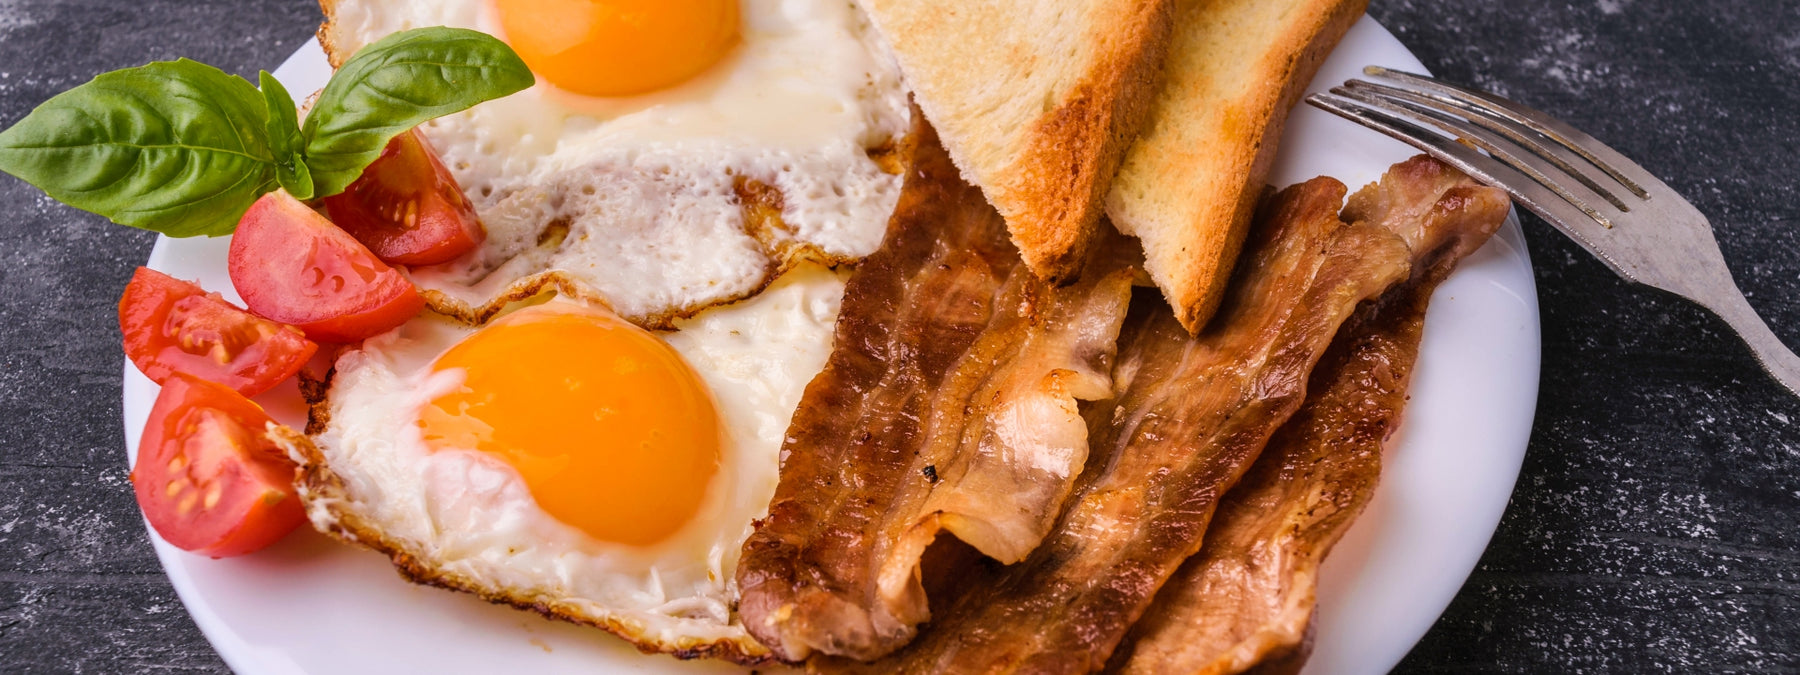 How Does Breakfast Impact Weight Loss?